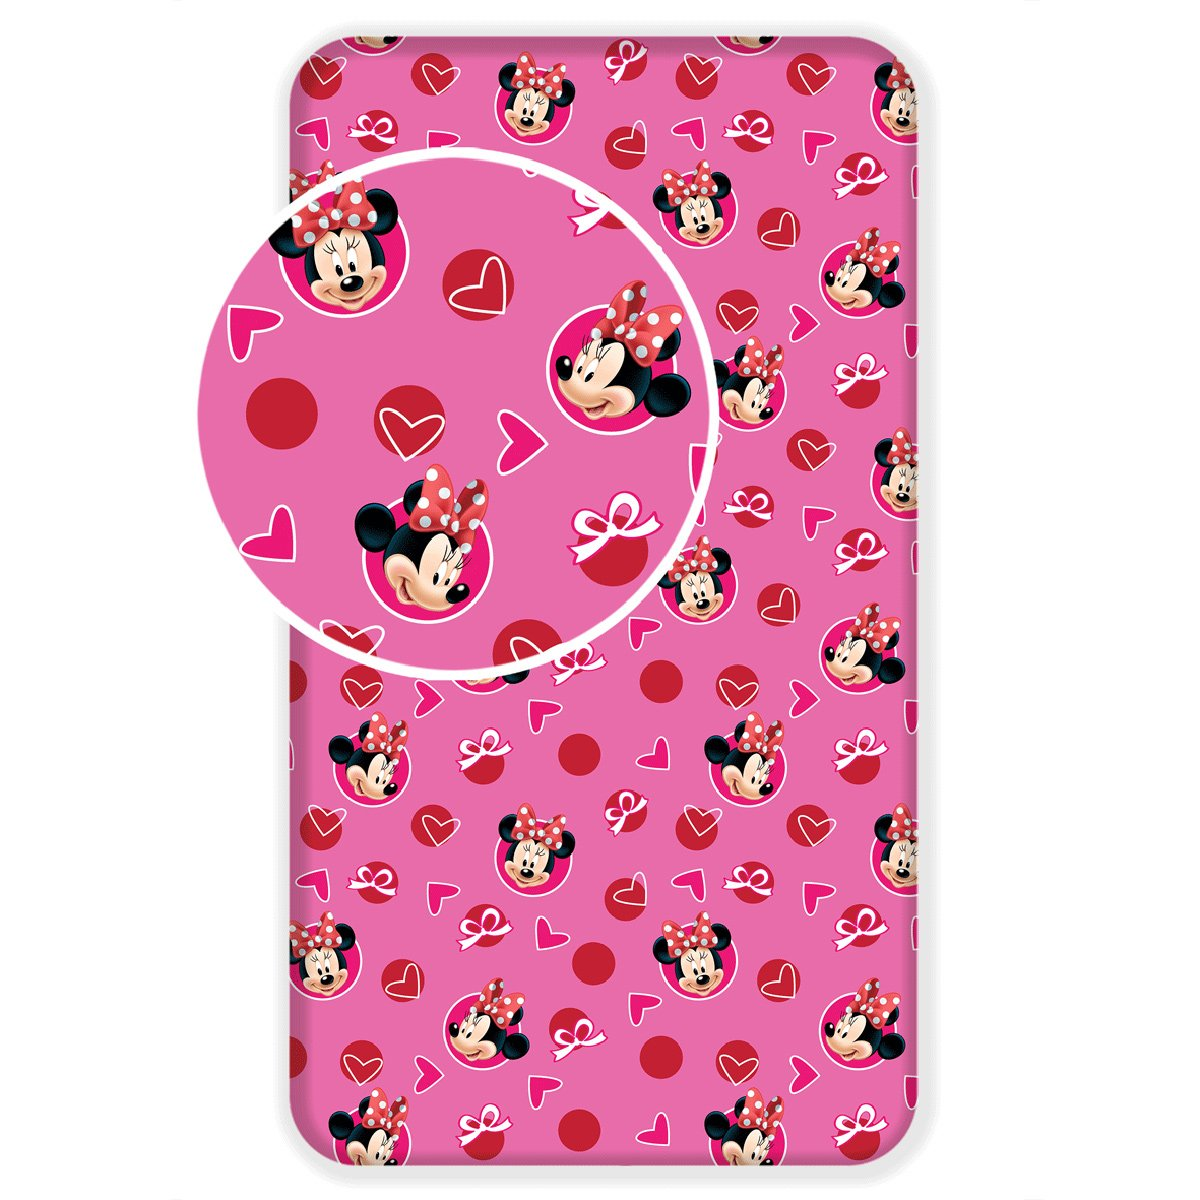 Jerry Fabrics Minnie Mouse Hearts Single Fitted Bed Sheet By BestTrend